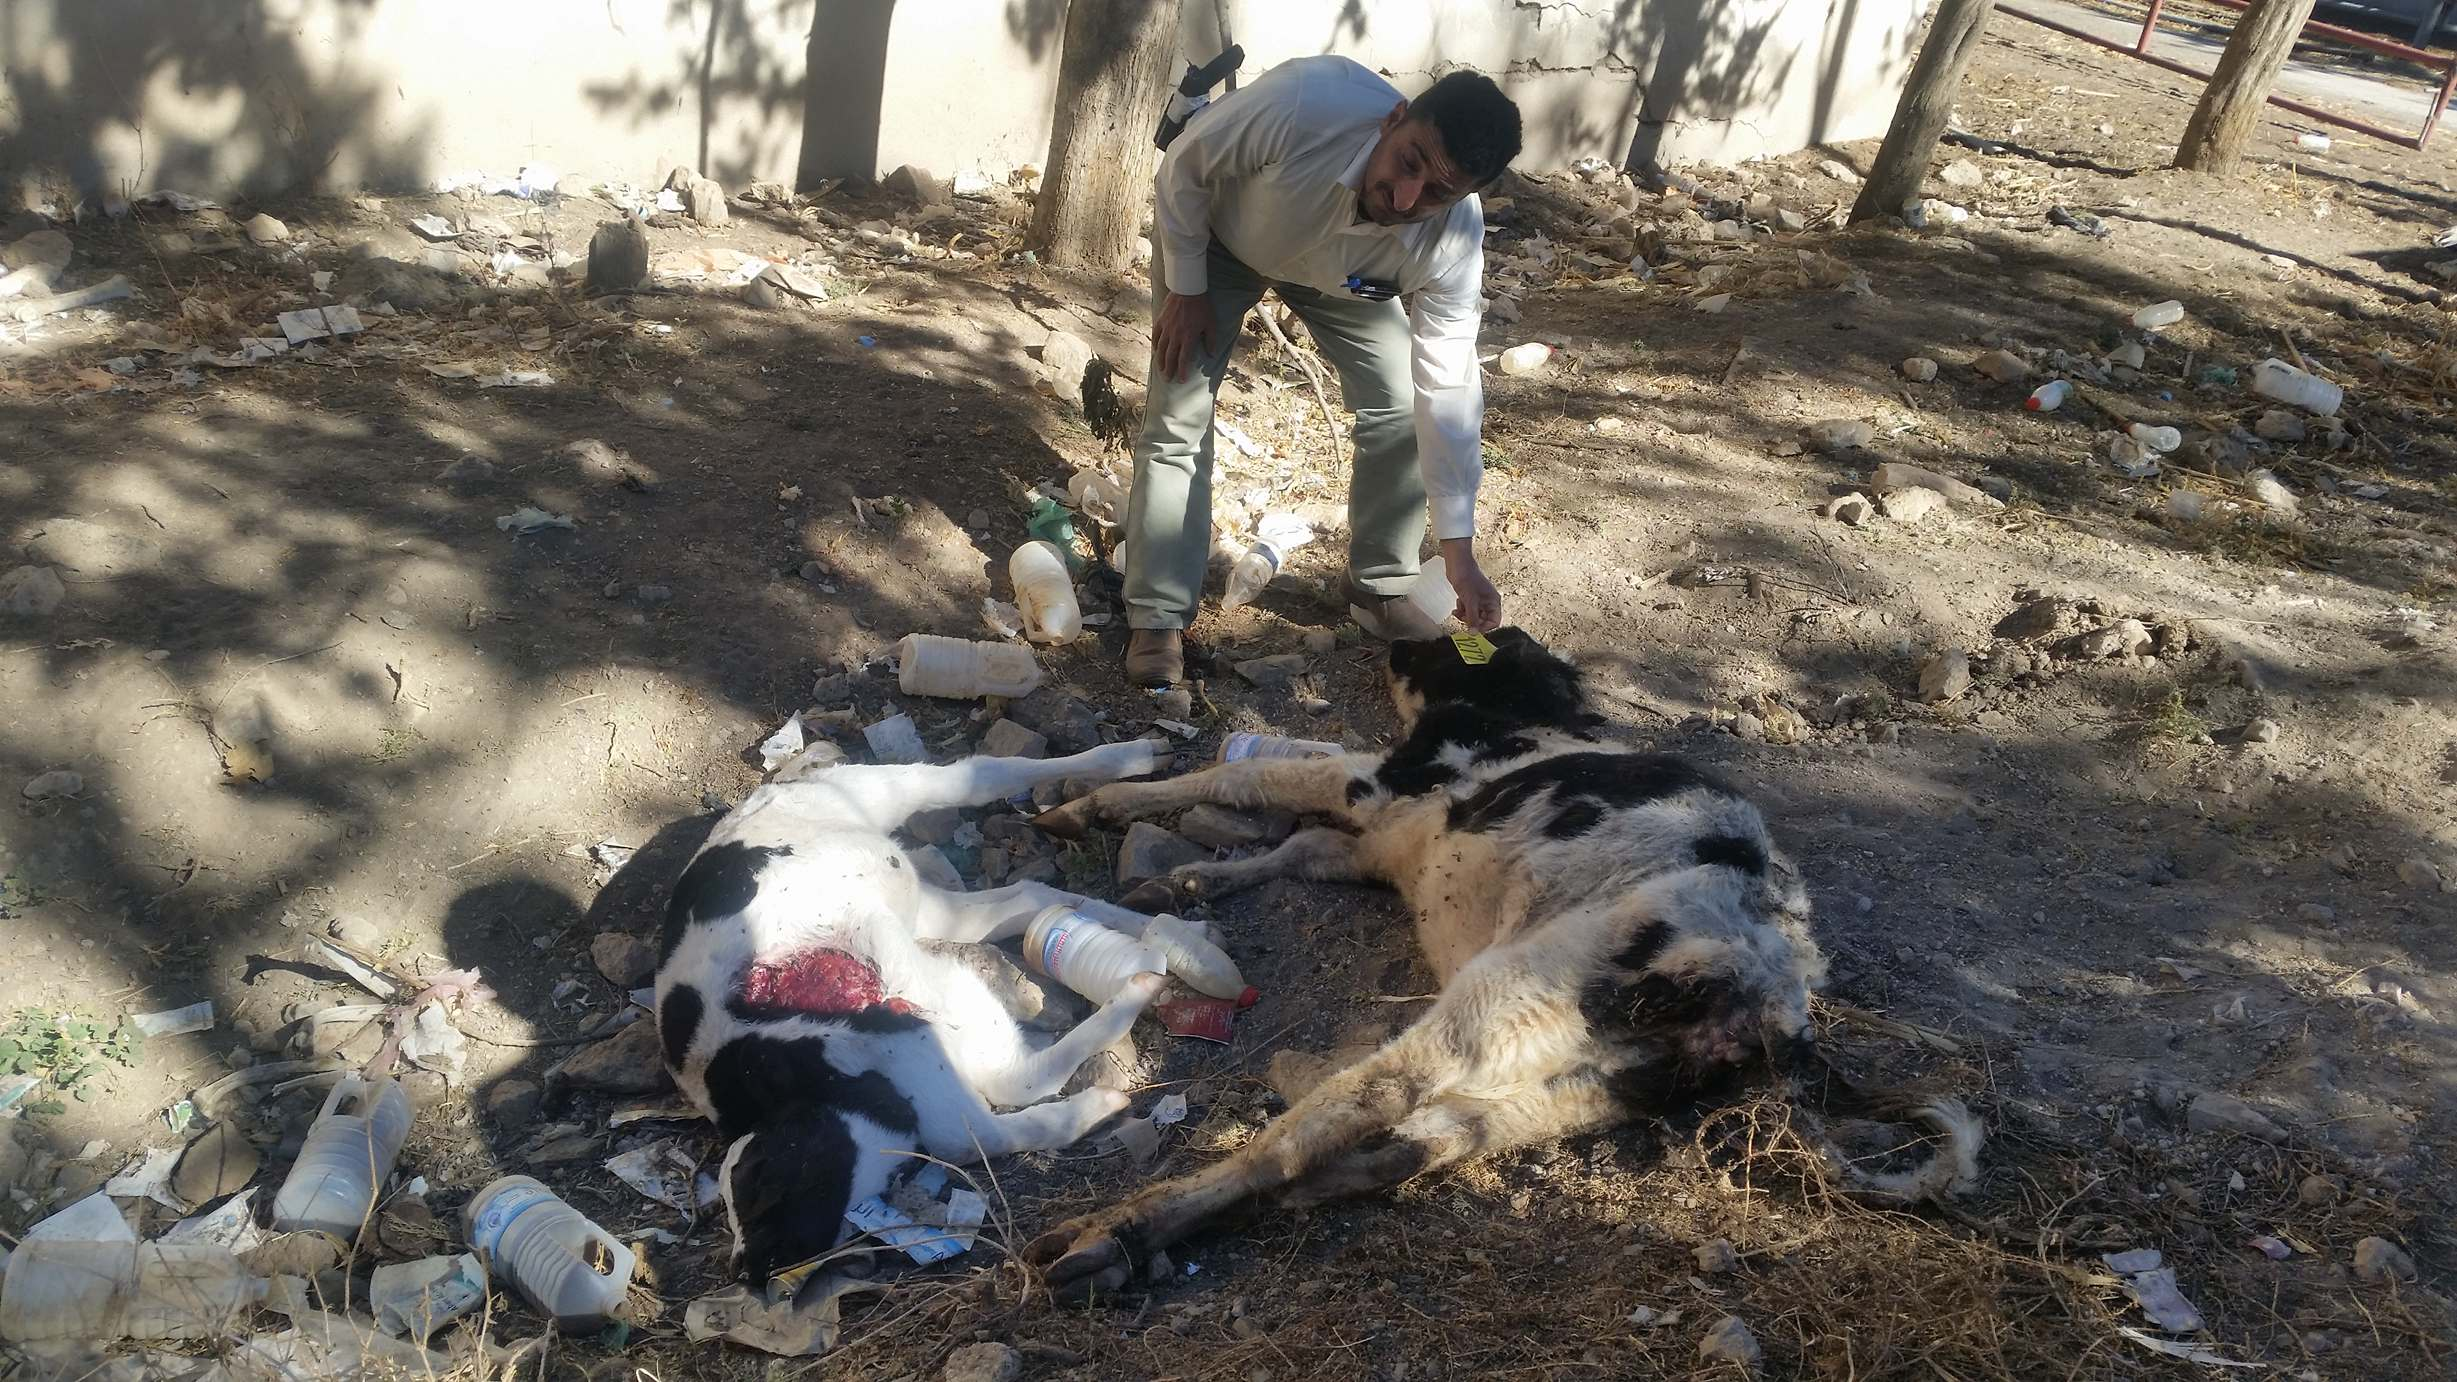 dhamar cows and calves dying of starvation OWAP AR to the rescue 13 Jan 2018 donation sent but we need more funds there are still 241 alive and suffering .jpg